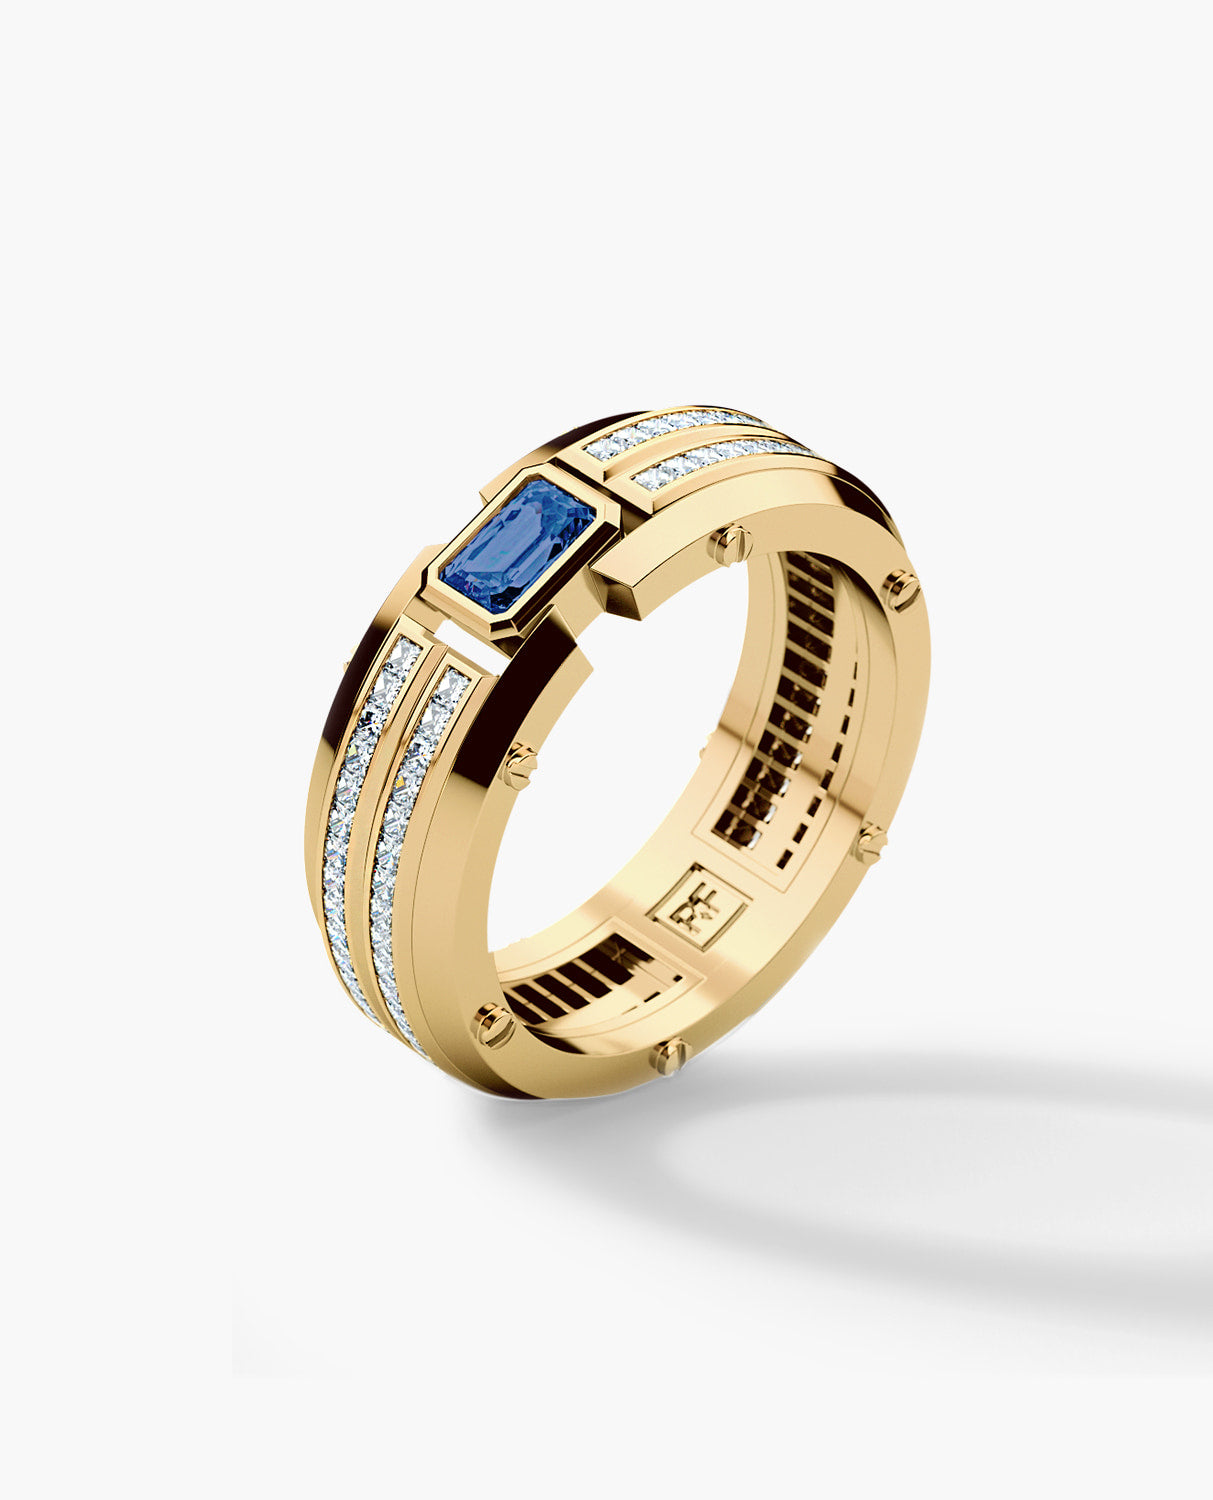 CLEBURNE Mens Gold Wedding Band with Sapphire